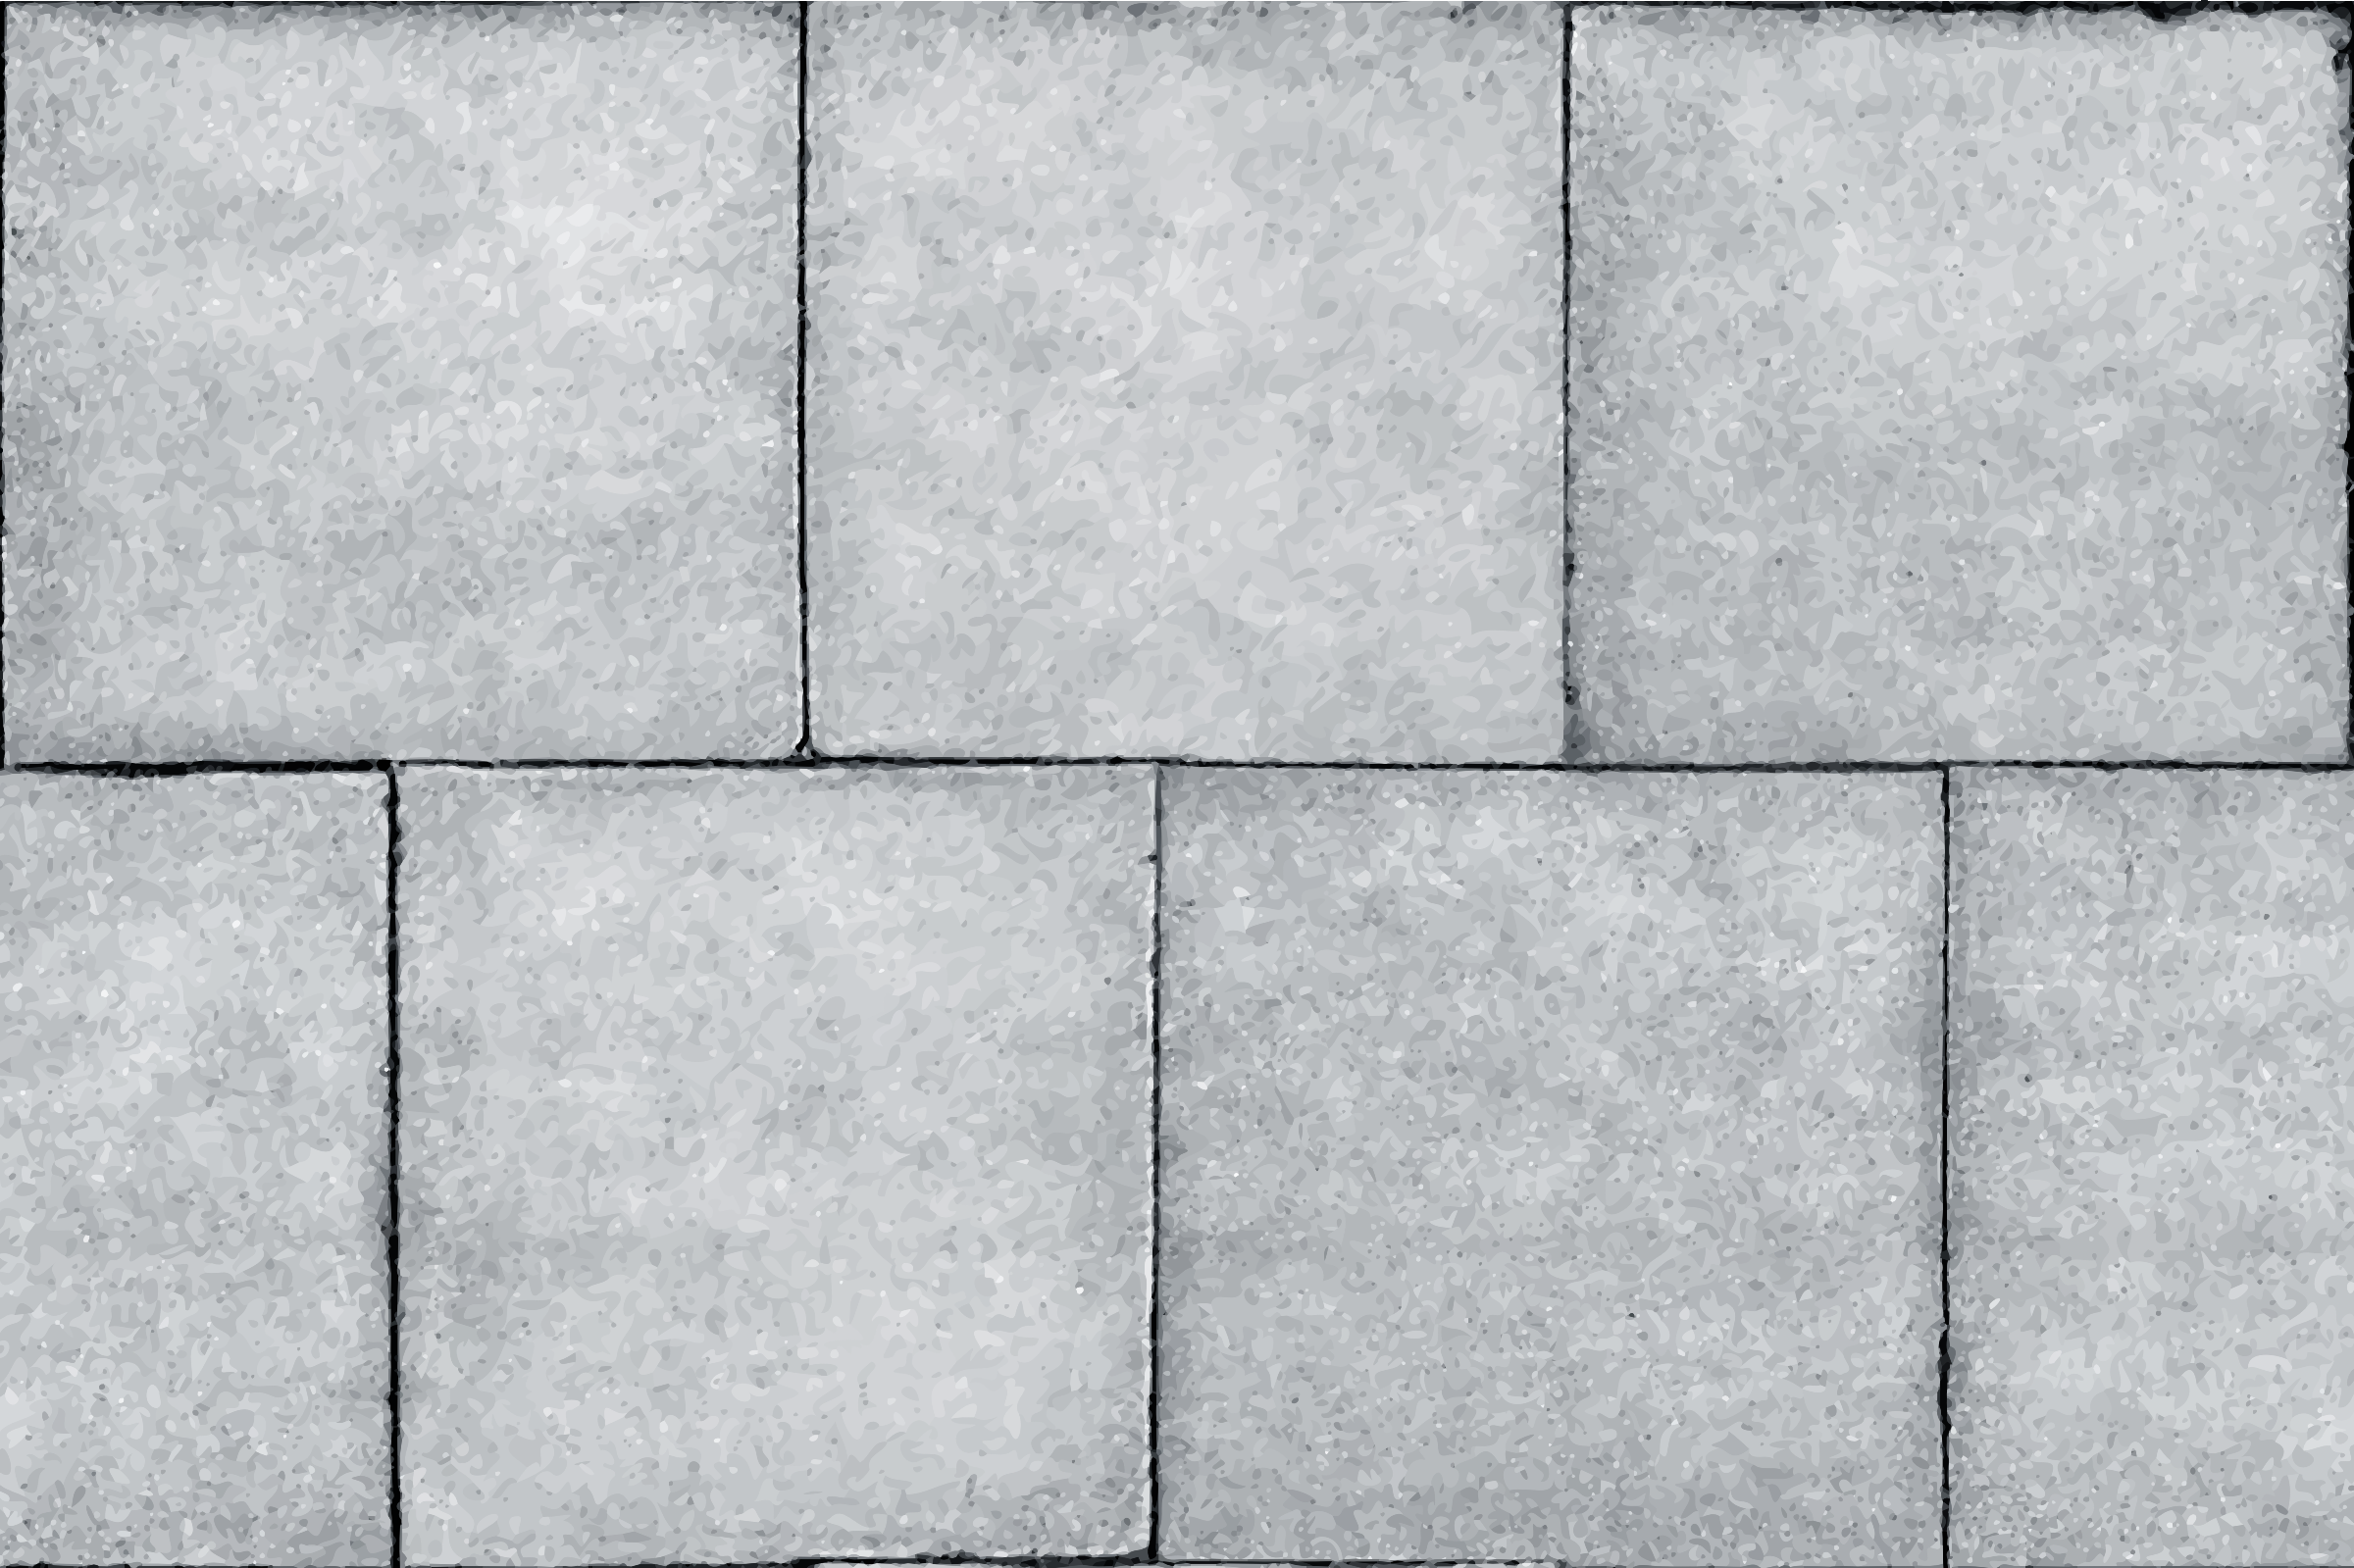 Pavement Png, png collections at sccpre.cat.